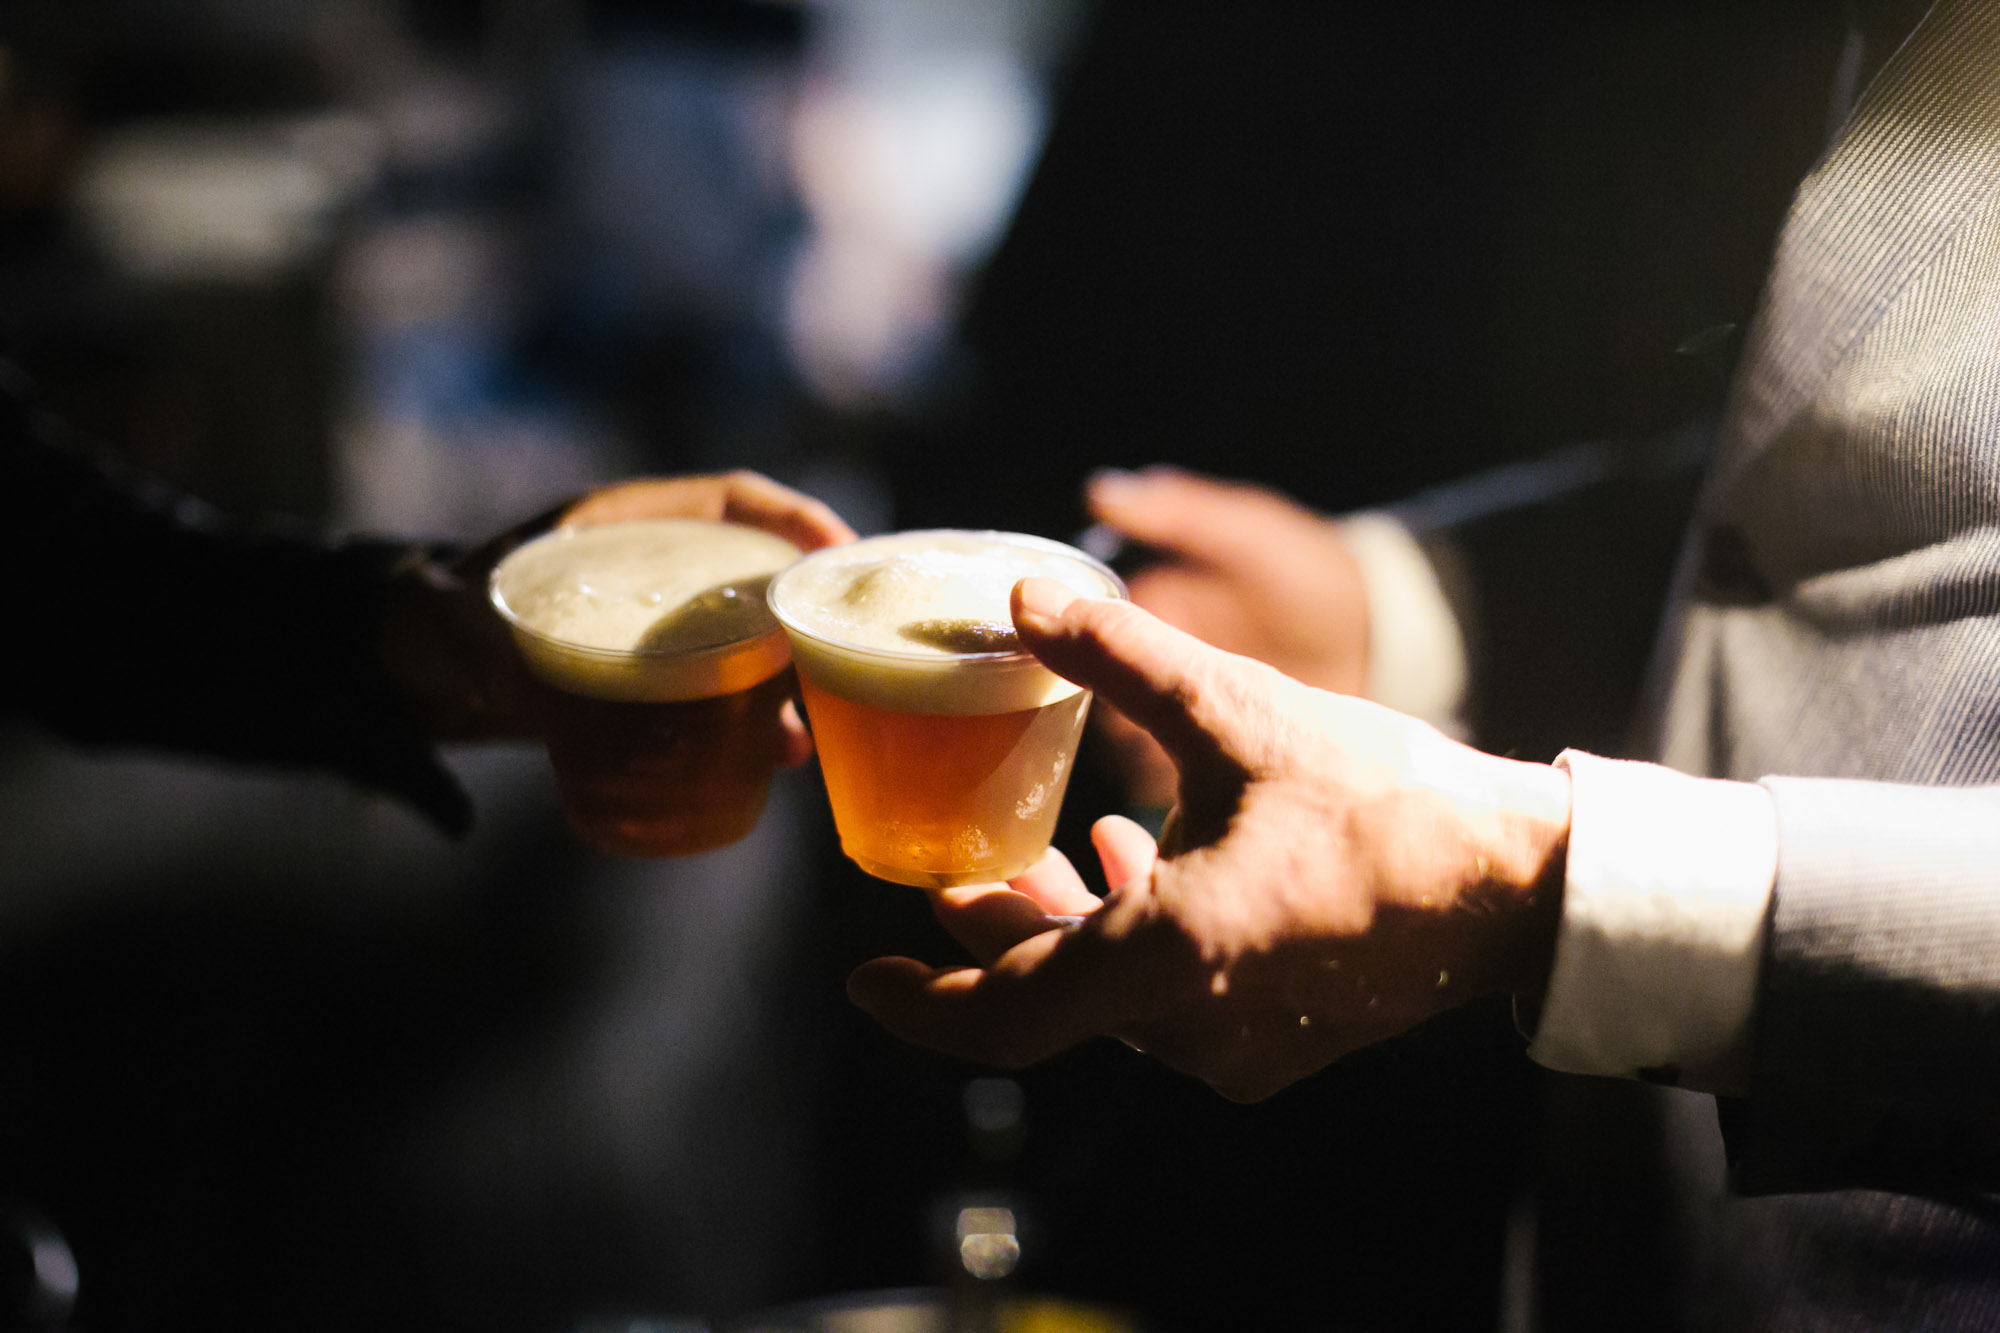 Wedding guests toast with beer at after party